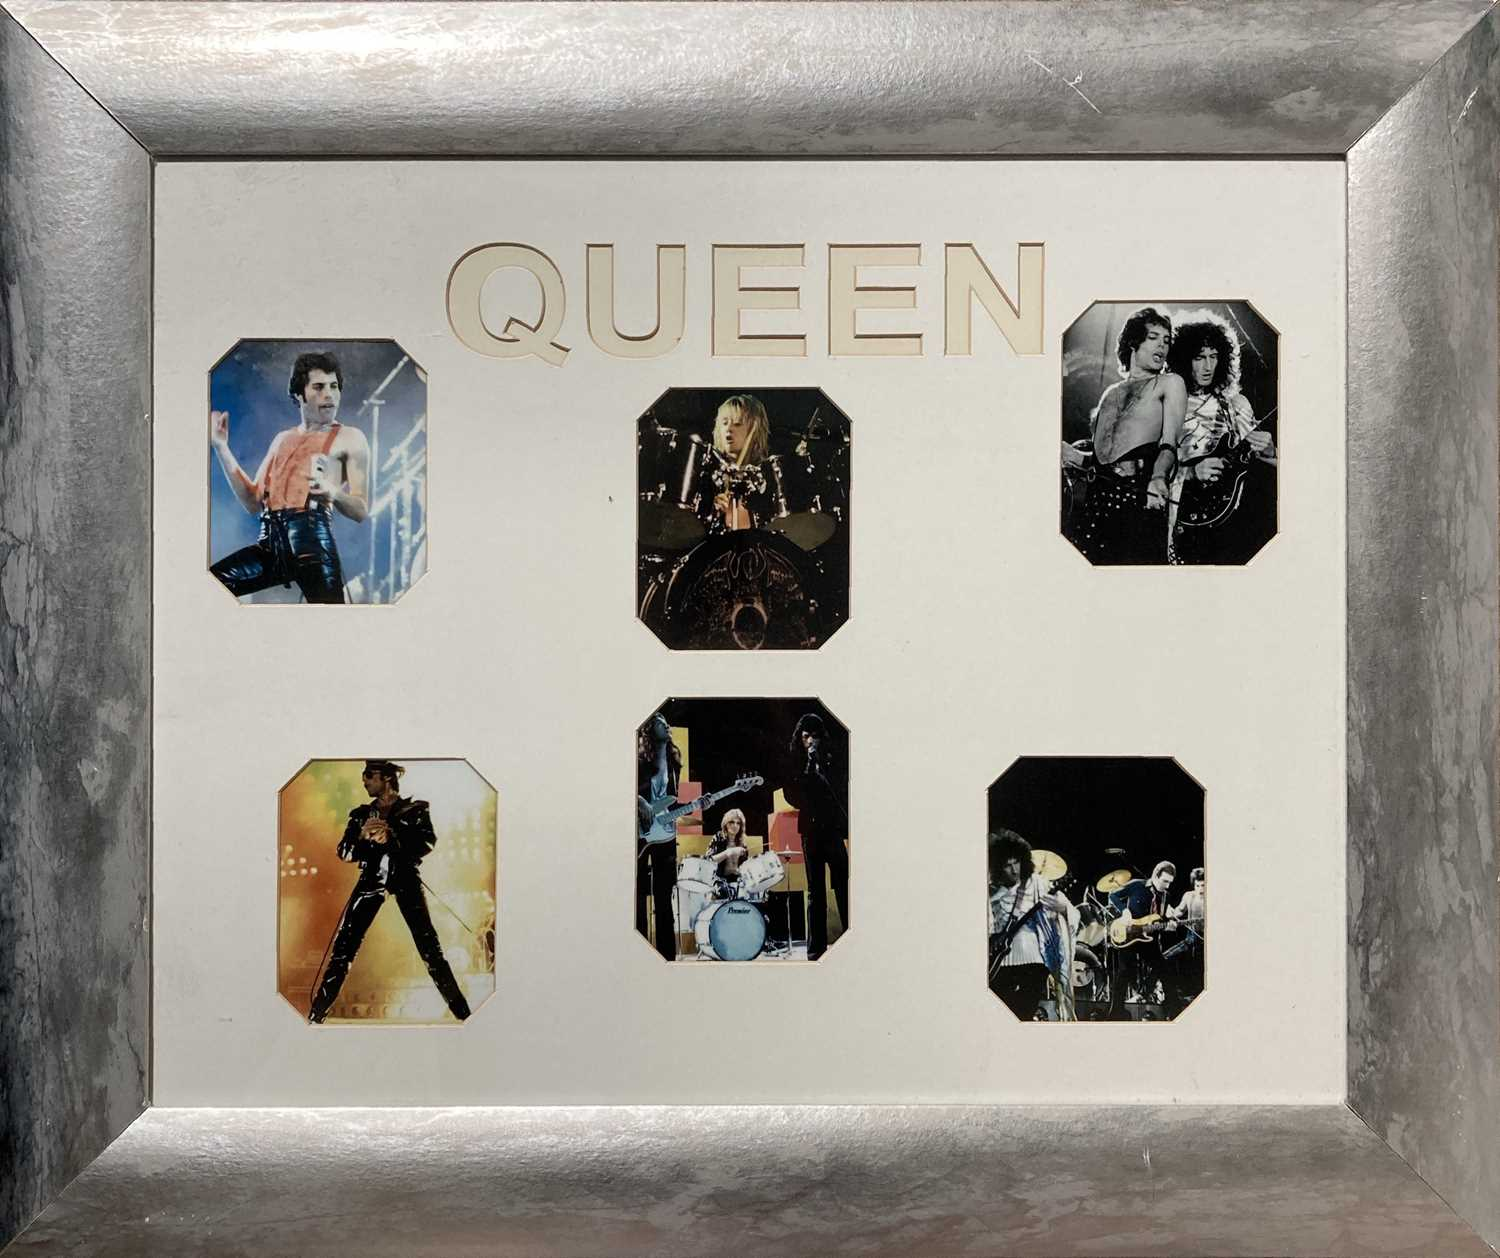 QUEEN - SHOP DISPLAYS / FRAMED ITEMS. - Image 2 of 4